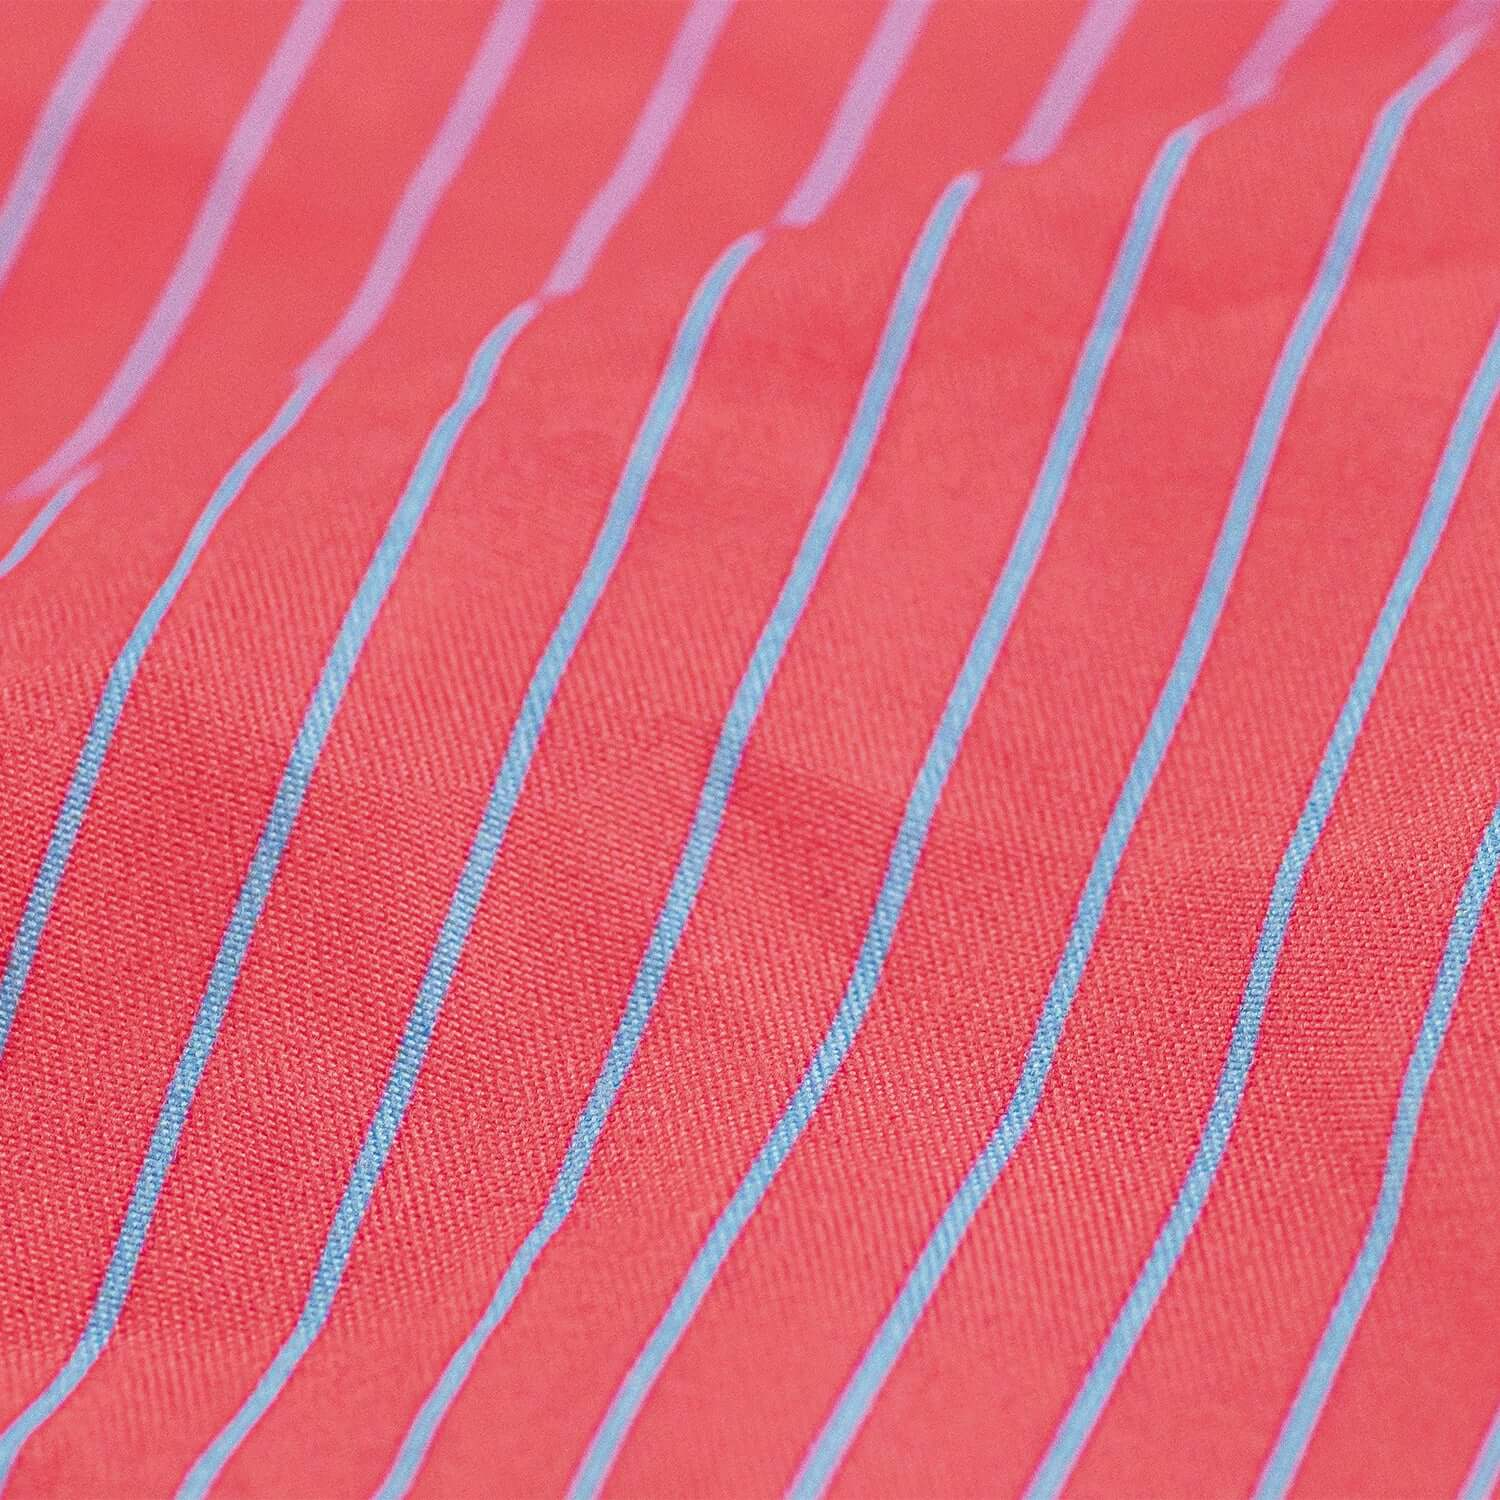 STRIPES CORAL - Clorofila Sea Wear